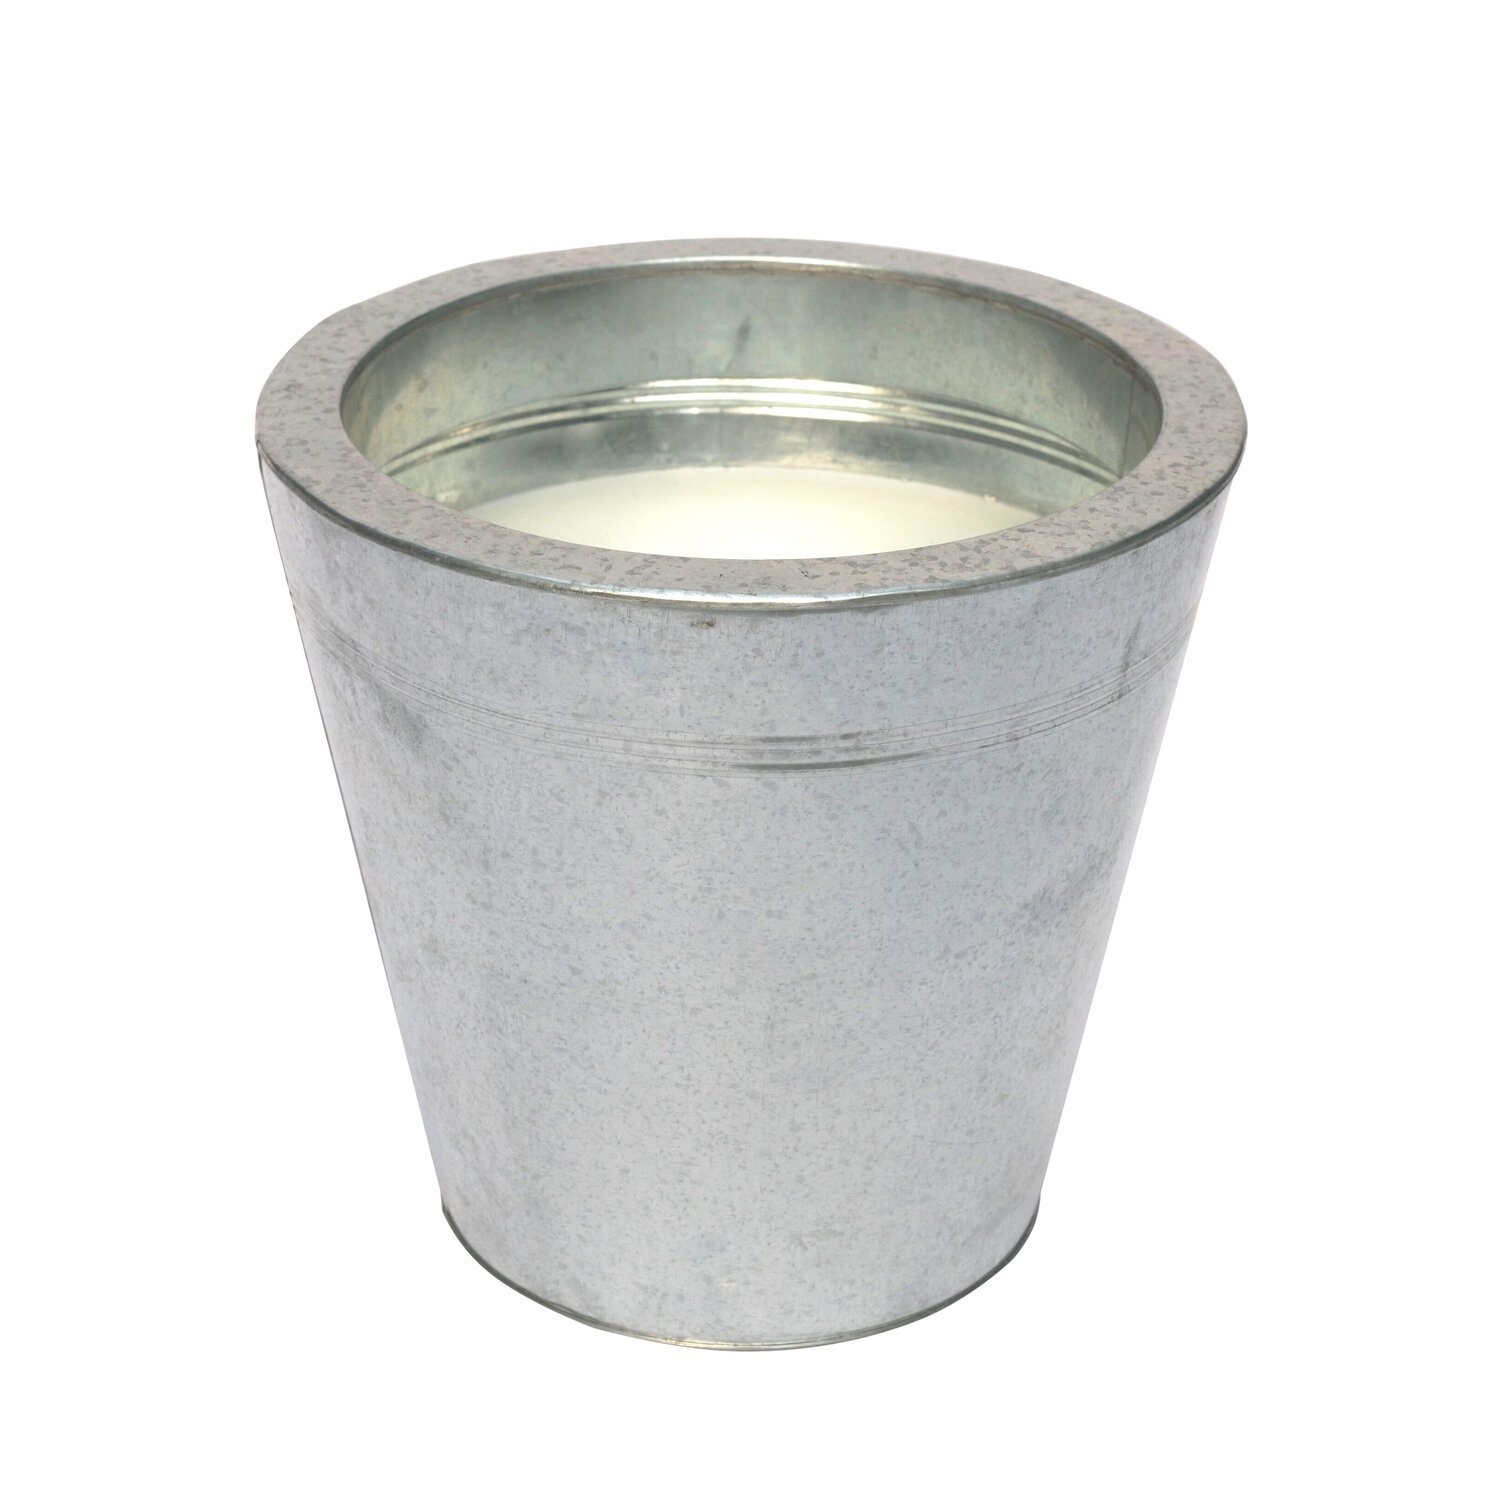 265 OZ Citro Patio King Galvanized Bucket